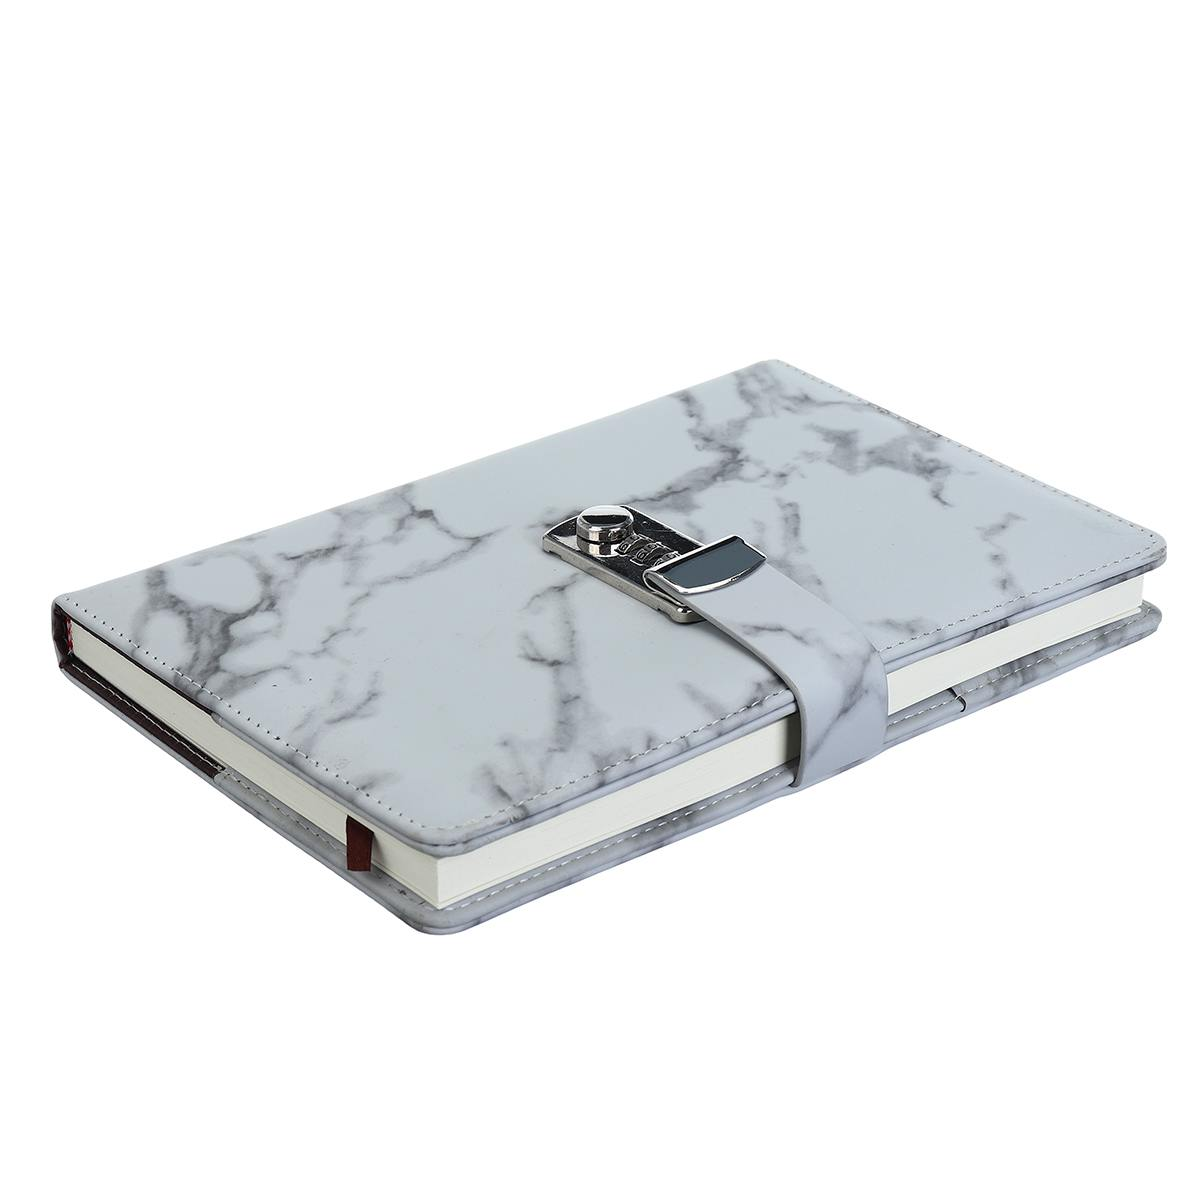 latest product 2019 a5 pu password diary notebook with lock